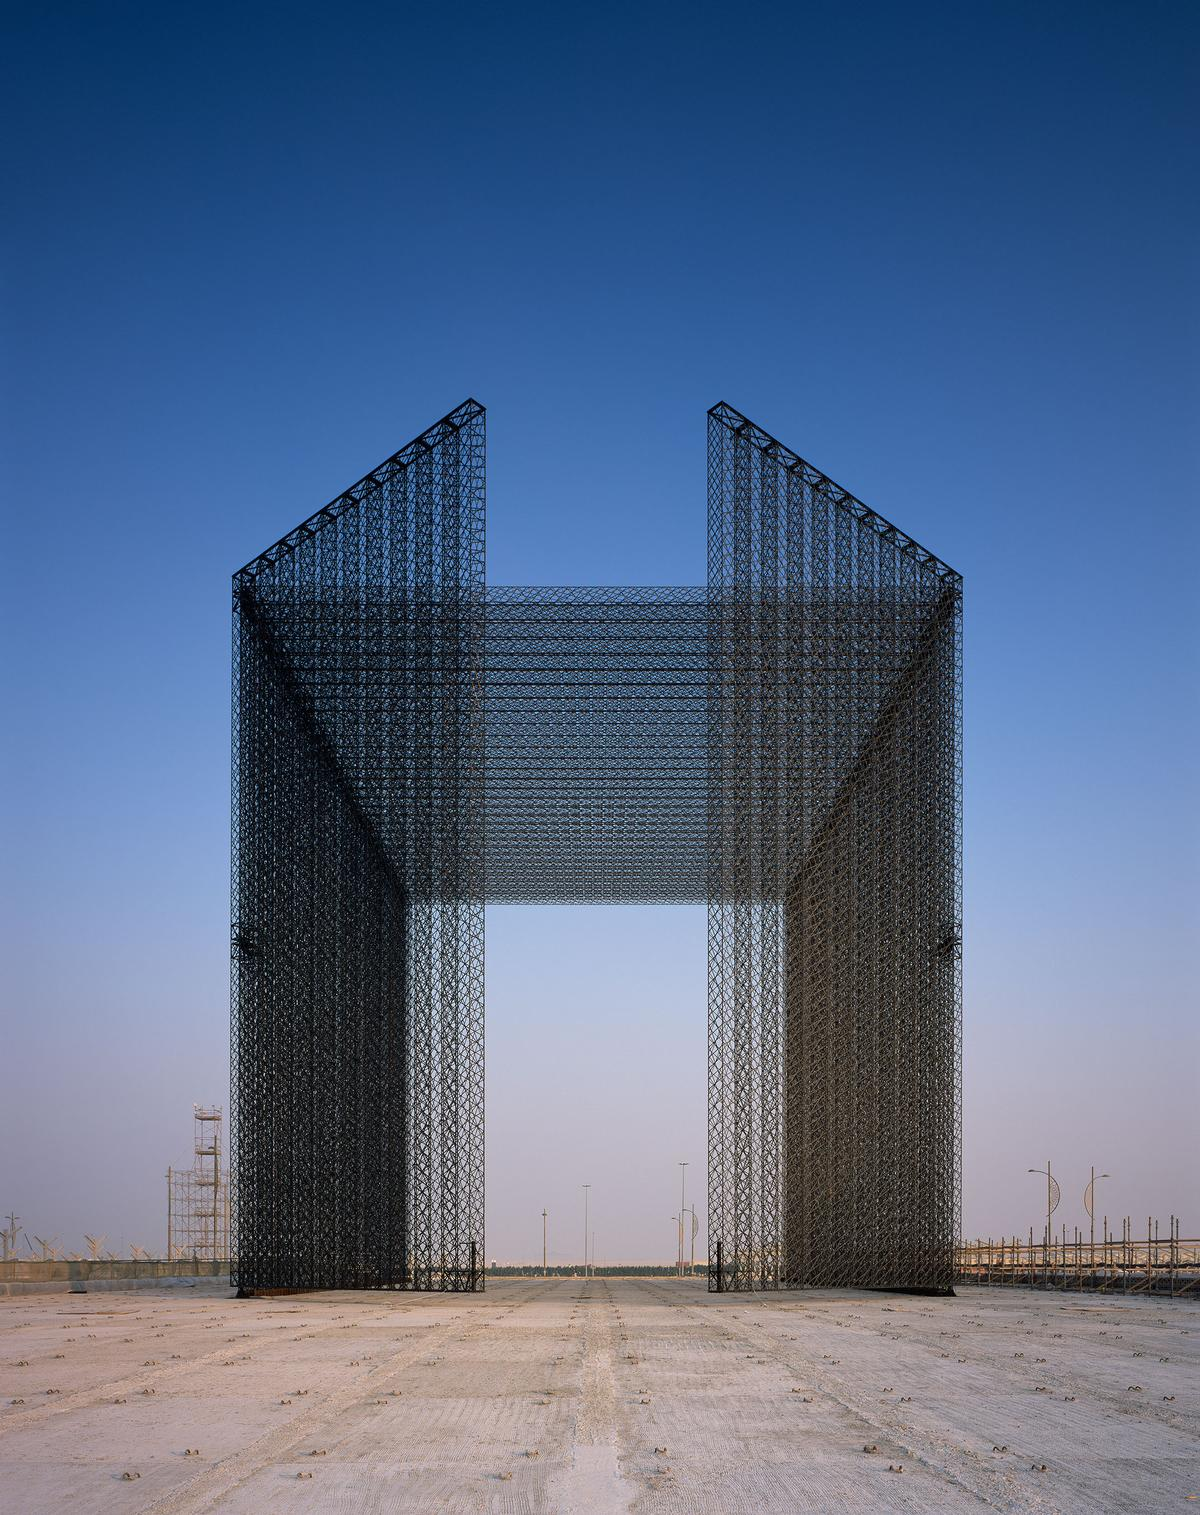 The portals feature two large doors each measuring 21m (69ft) high and 10.5m (34ft) wide / Helene Binet